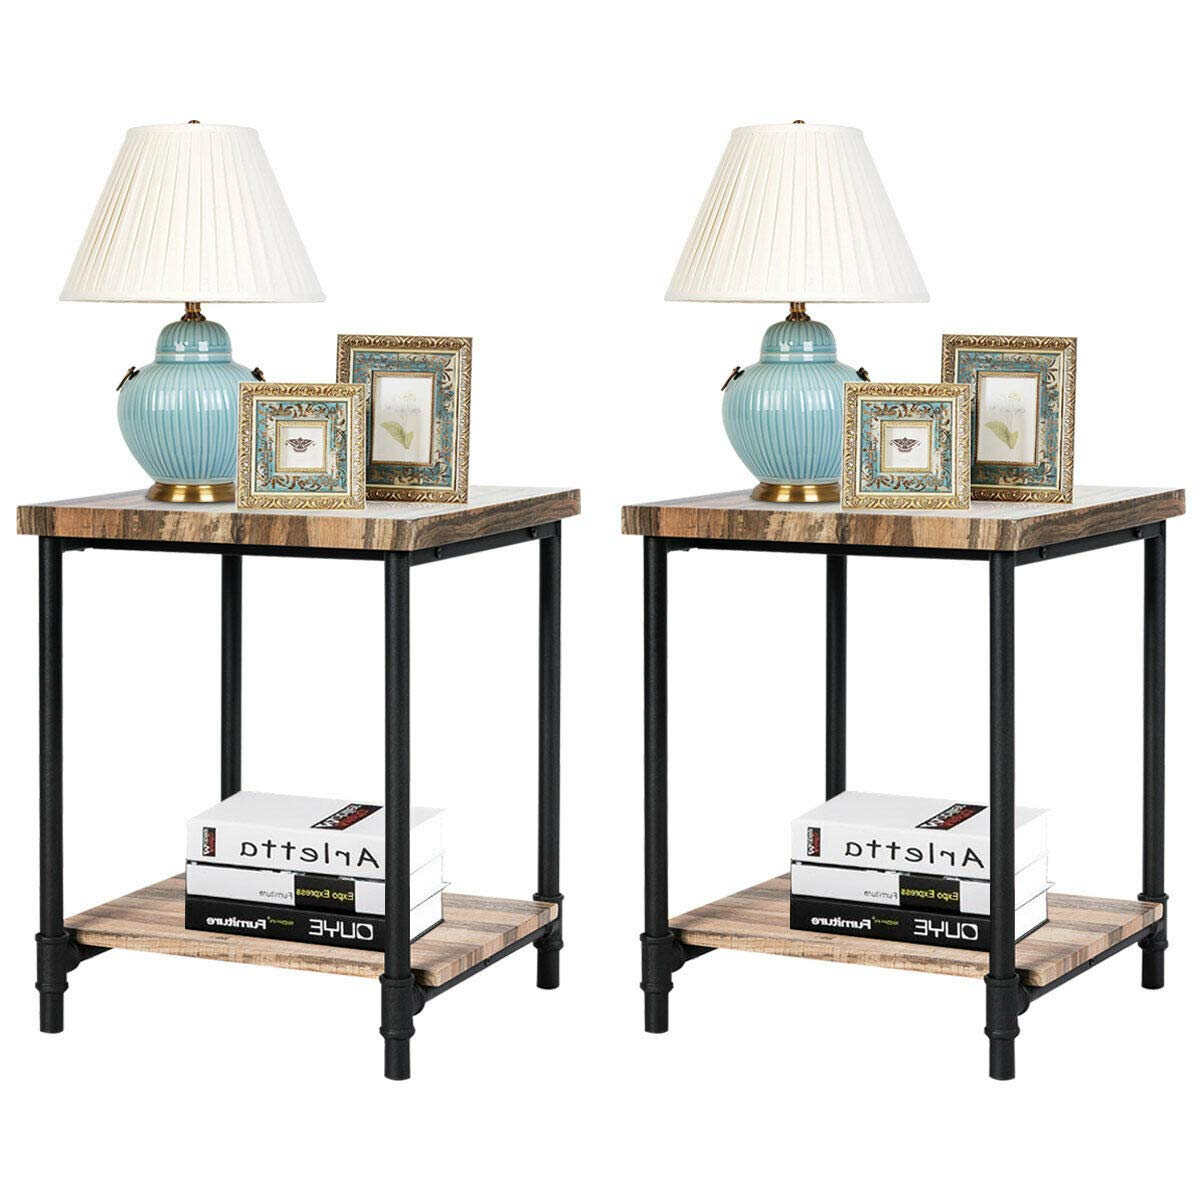 Tangkula End Table, Wooden Square Table with Metal Frame, Modern Side Table, Ideal for Bedroom, Living Room, Office, Apartment and Studio, 22 inch Side Table, Natural (2) by Tangkula